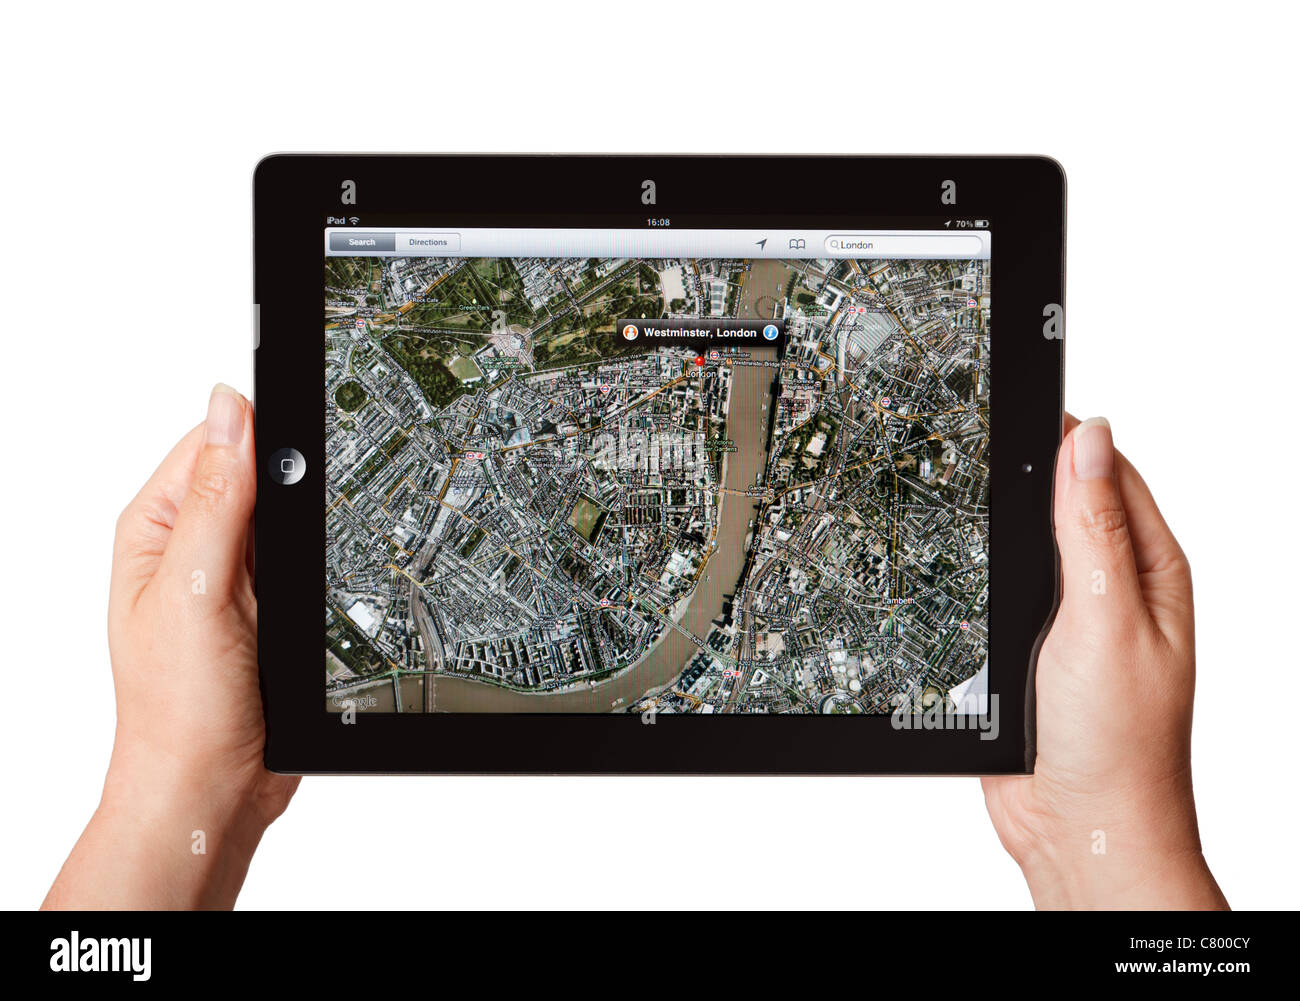 Hands holding iPad showing the Google Maps app centred on London - Stock Image